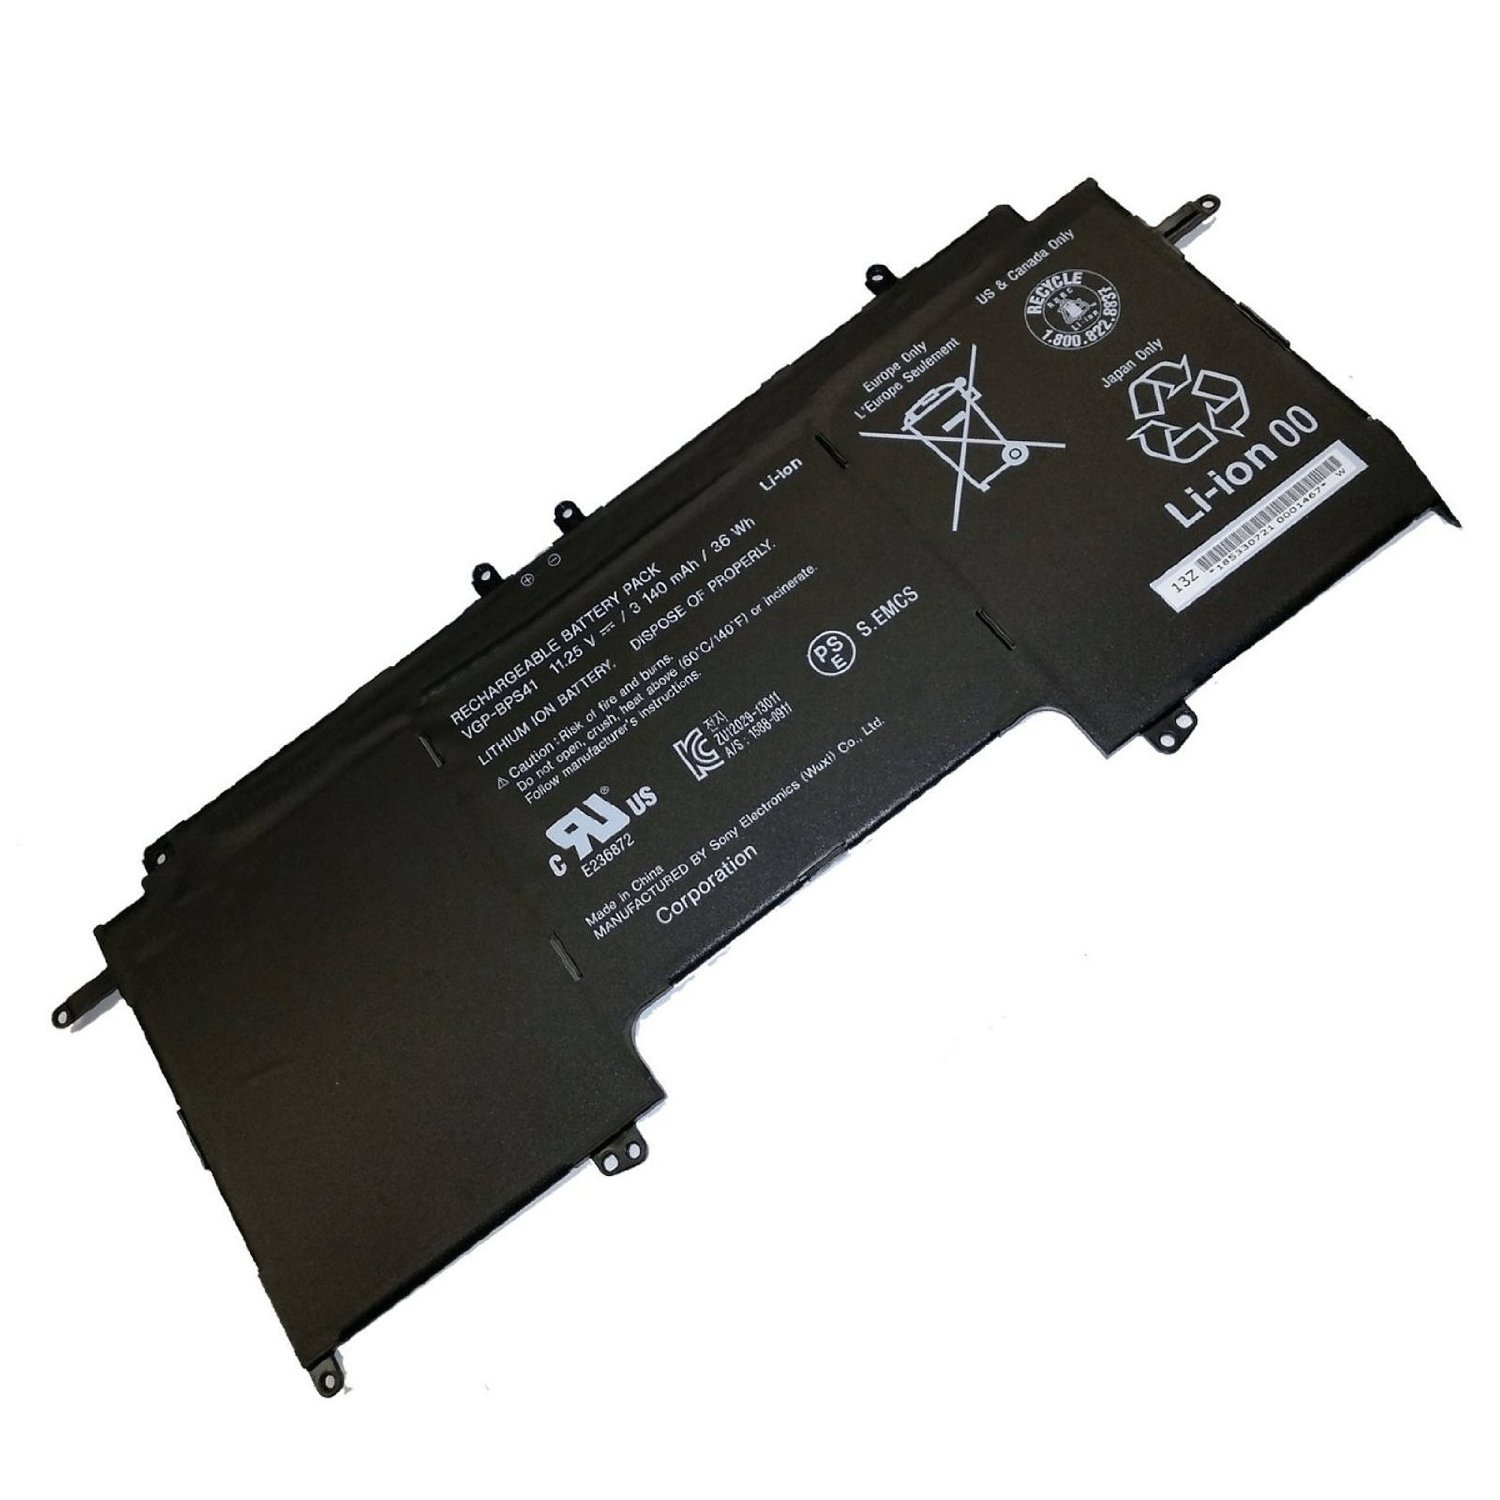 Amazon.com: 36WH VGP-BPS41 Battery For Sony Vaio Flip 13 SVF13N SVF13N13CXB Laptop: Computers & Accessories